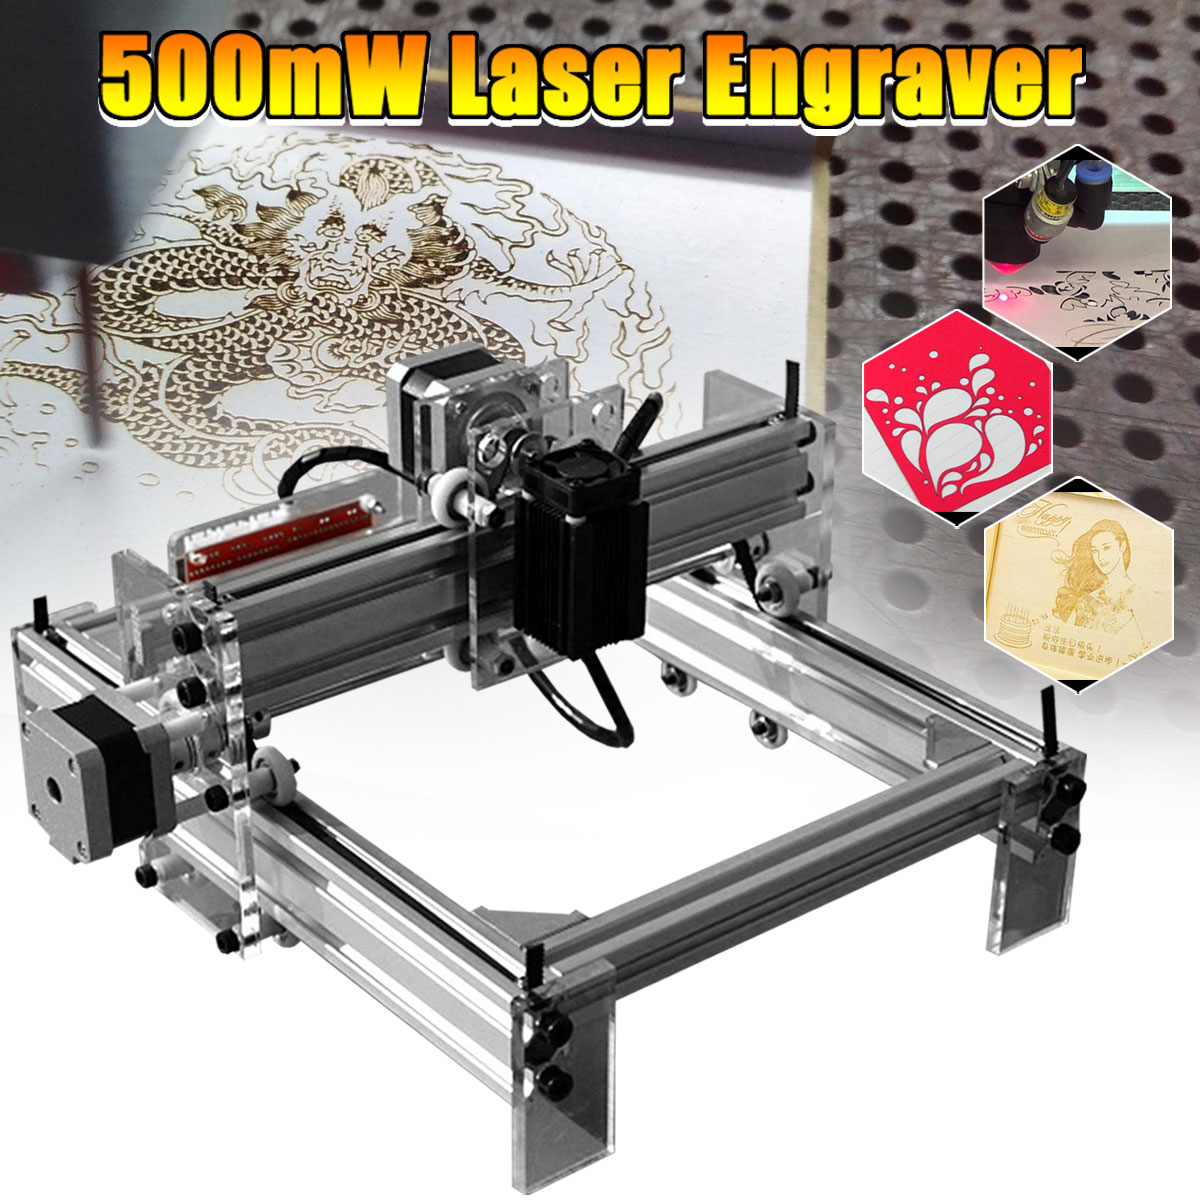 20X17cm 500mW DIY Mini Desktop Blue Laser Engraving Engraver Machine CNC Wood Router/Printer/Cutter/Power Adjust + Laser Goggles